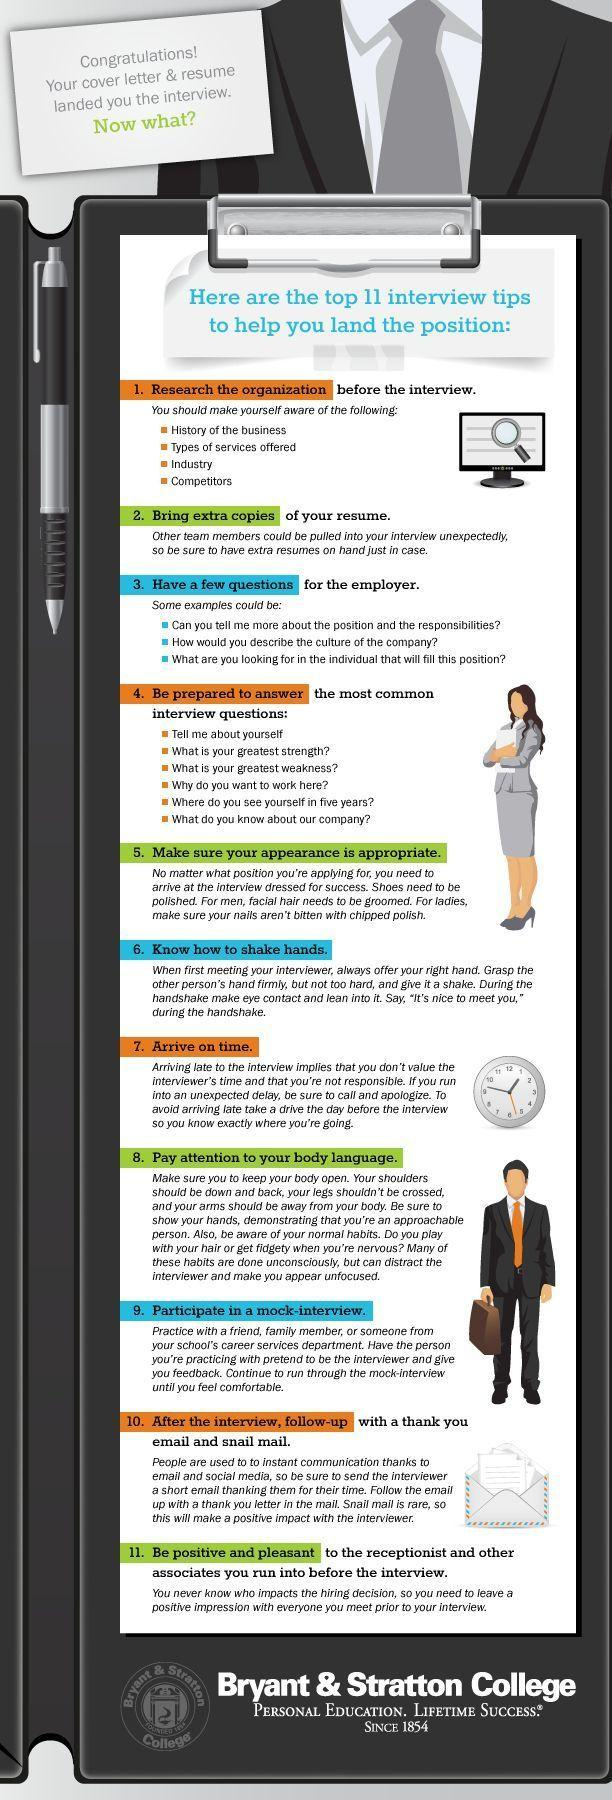 Employment blow job guide